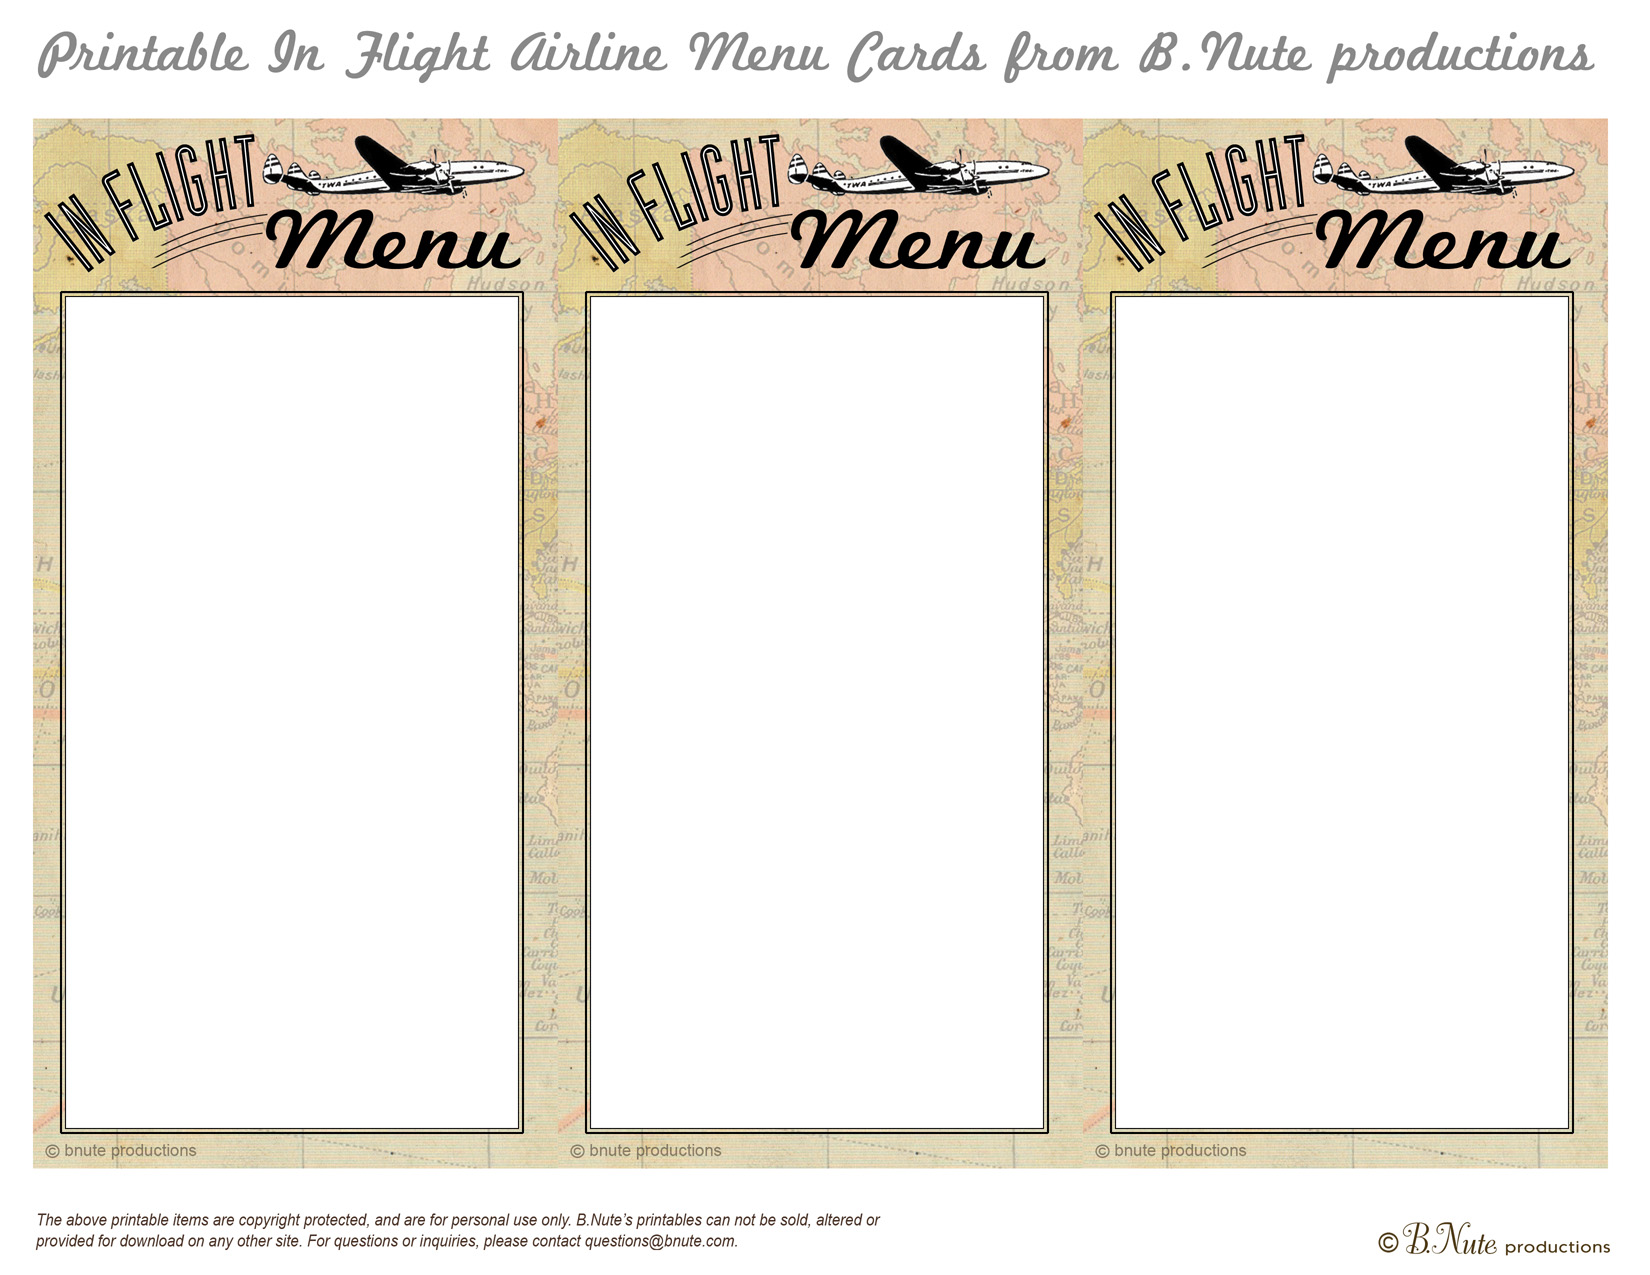 7 Best Images of Printable Menu Cards - Free Printable ...